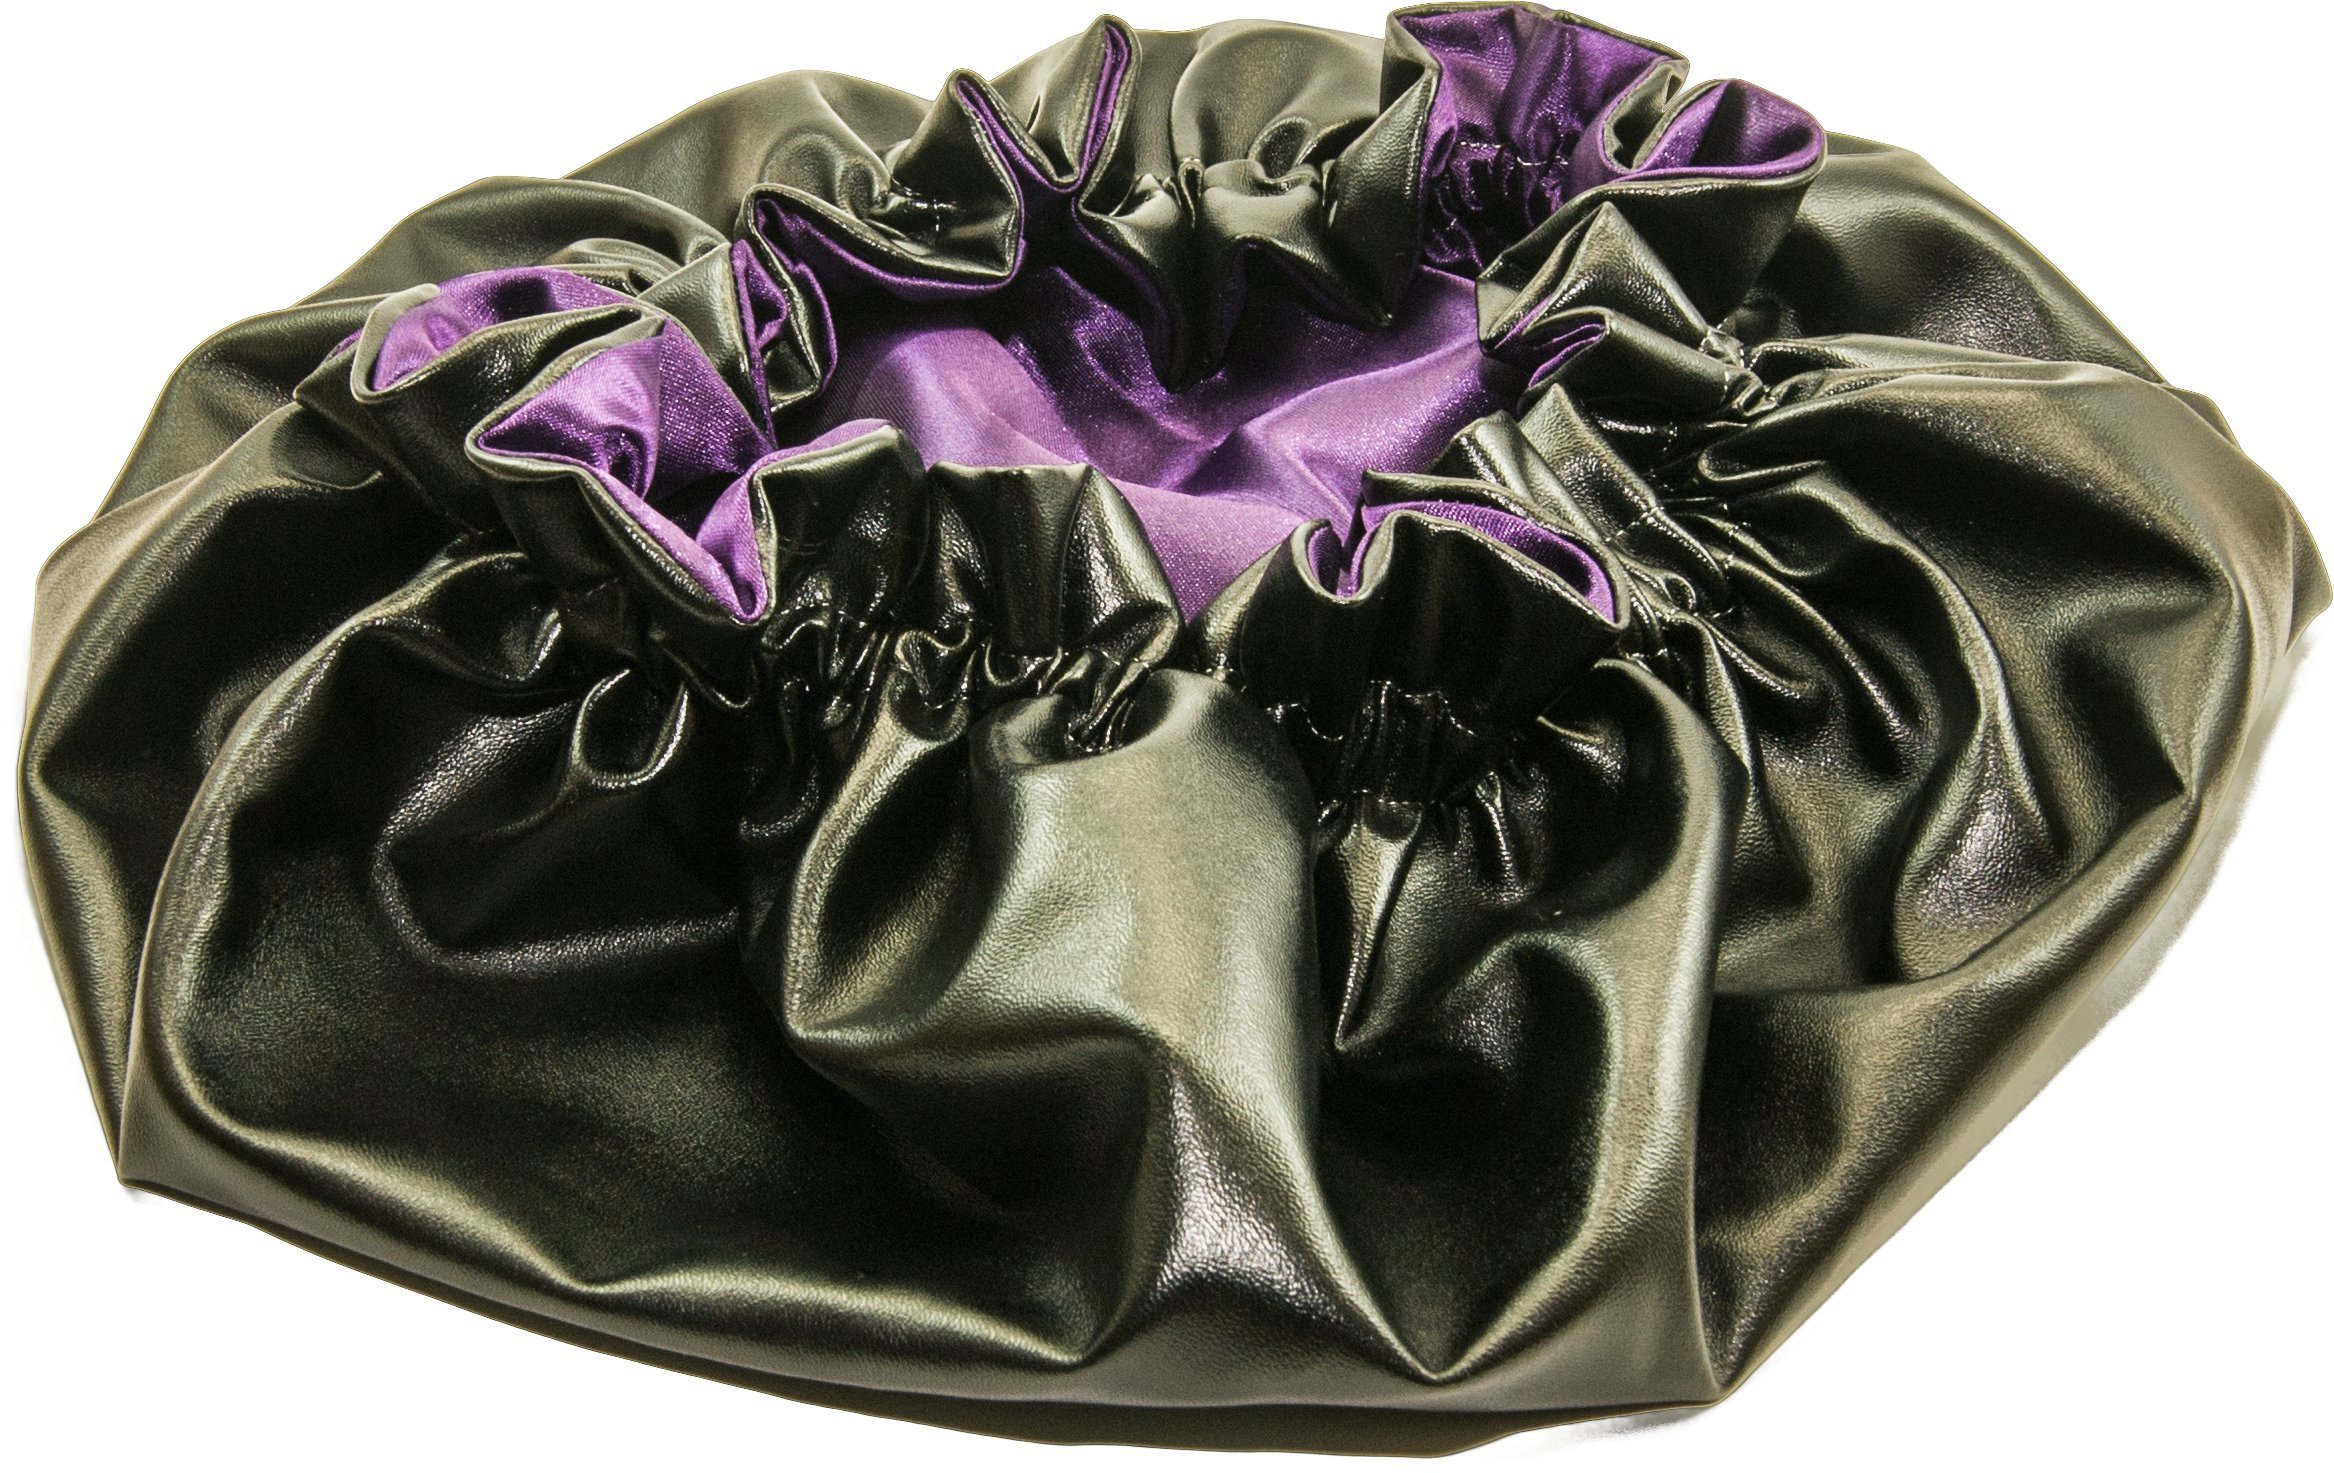 X Large PLUM-Leather & Satin hair bonnet - Shower Cap Large (6 in 1) Leather & Satin hair bonnet - Shower Cap - Self Warming Hot Oil Treatment - Deep Condition - Cold & Flu and GYM BONNET